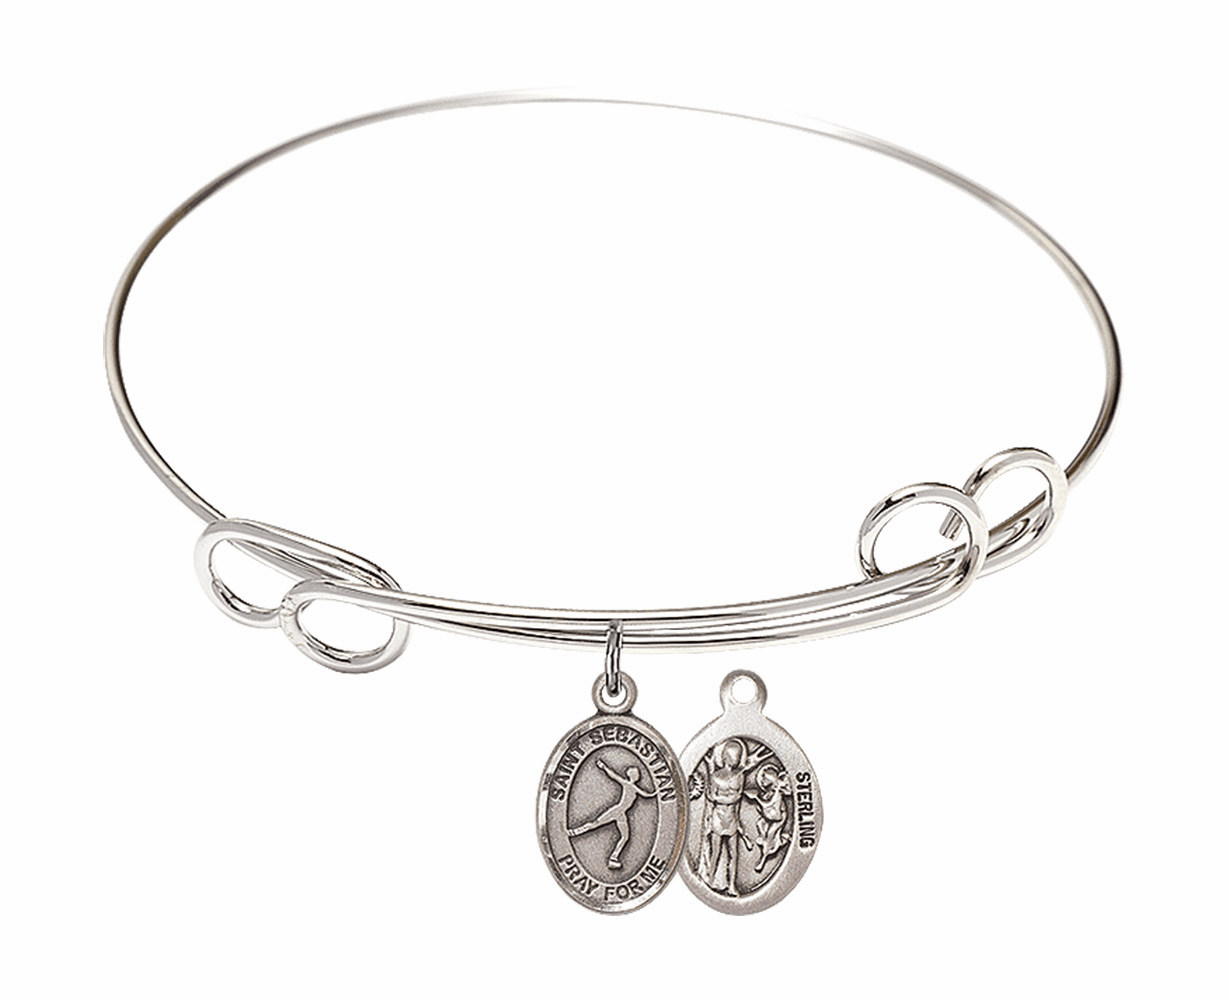 Round Loop St Sebastian Figure Skating Bangle Charm Bracelet by Bliss